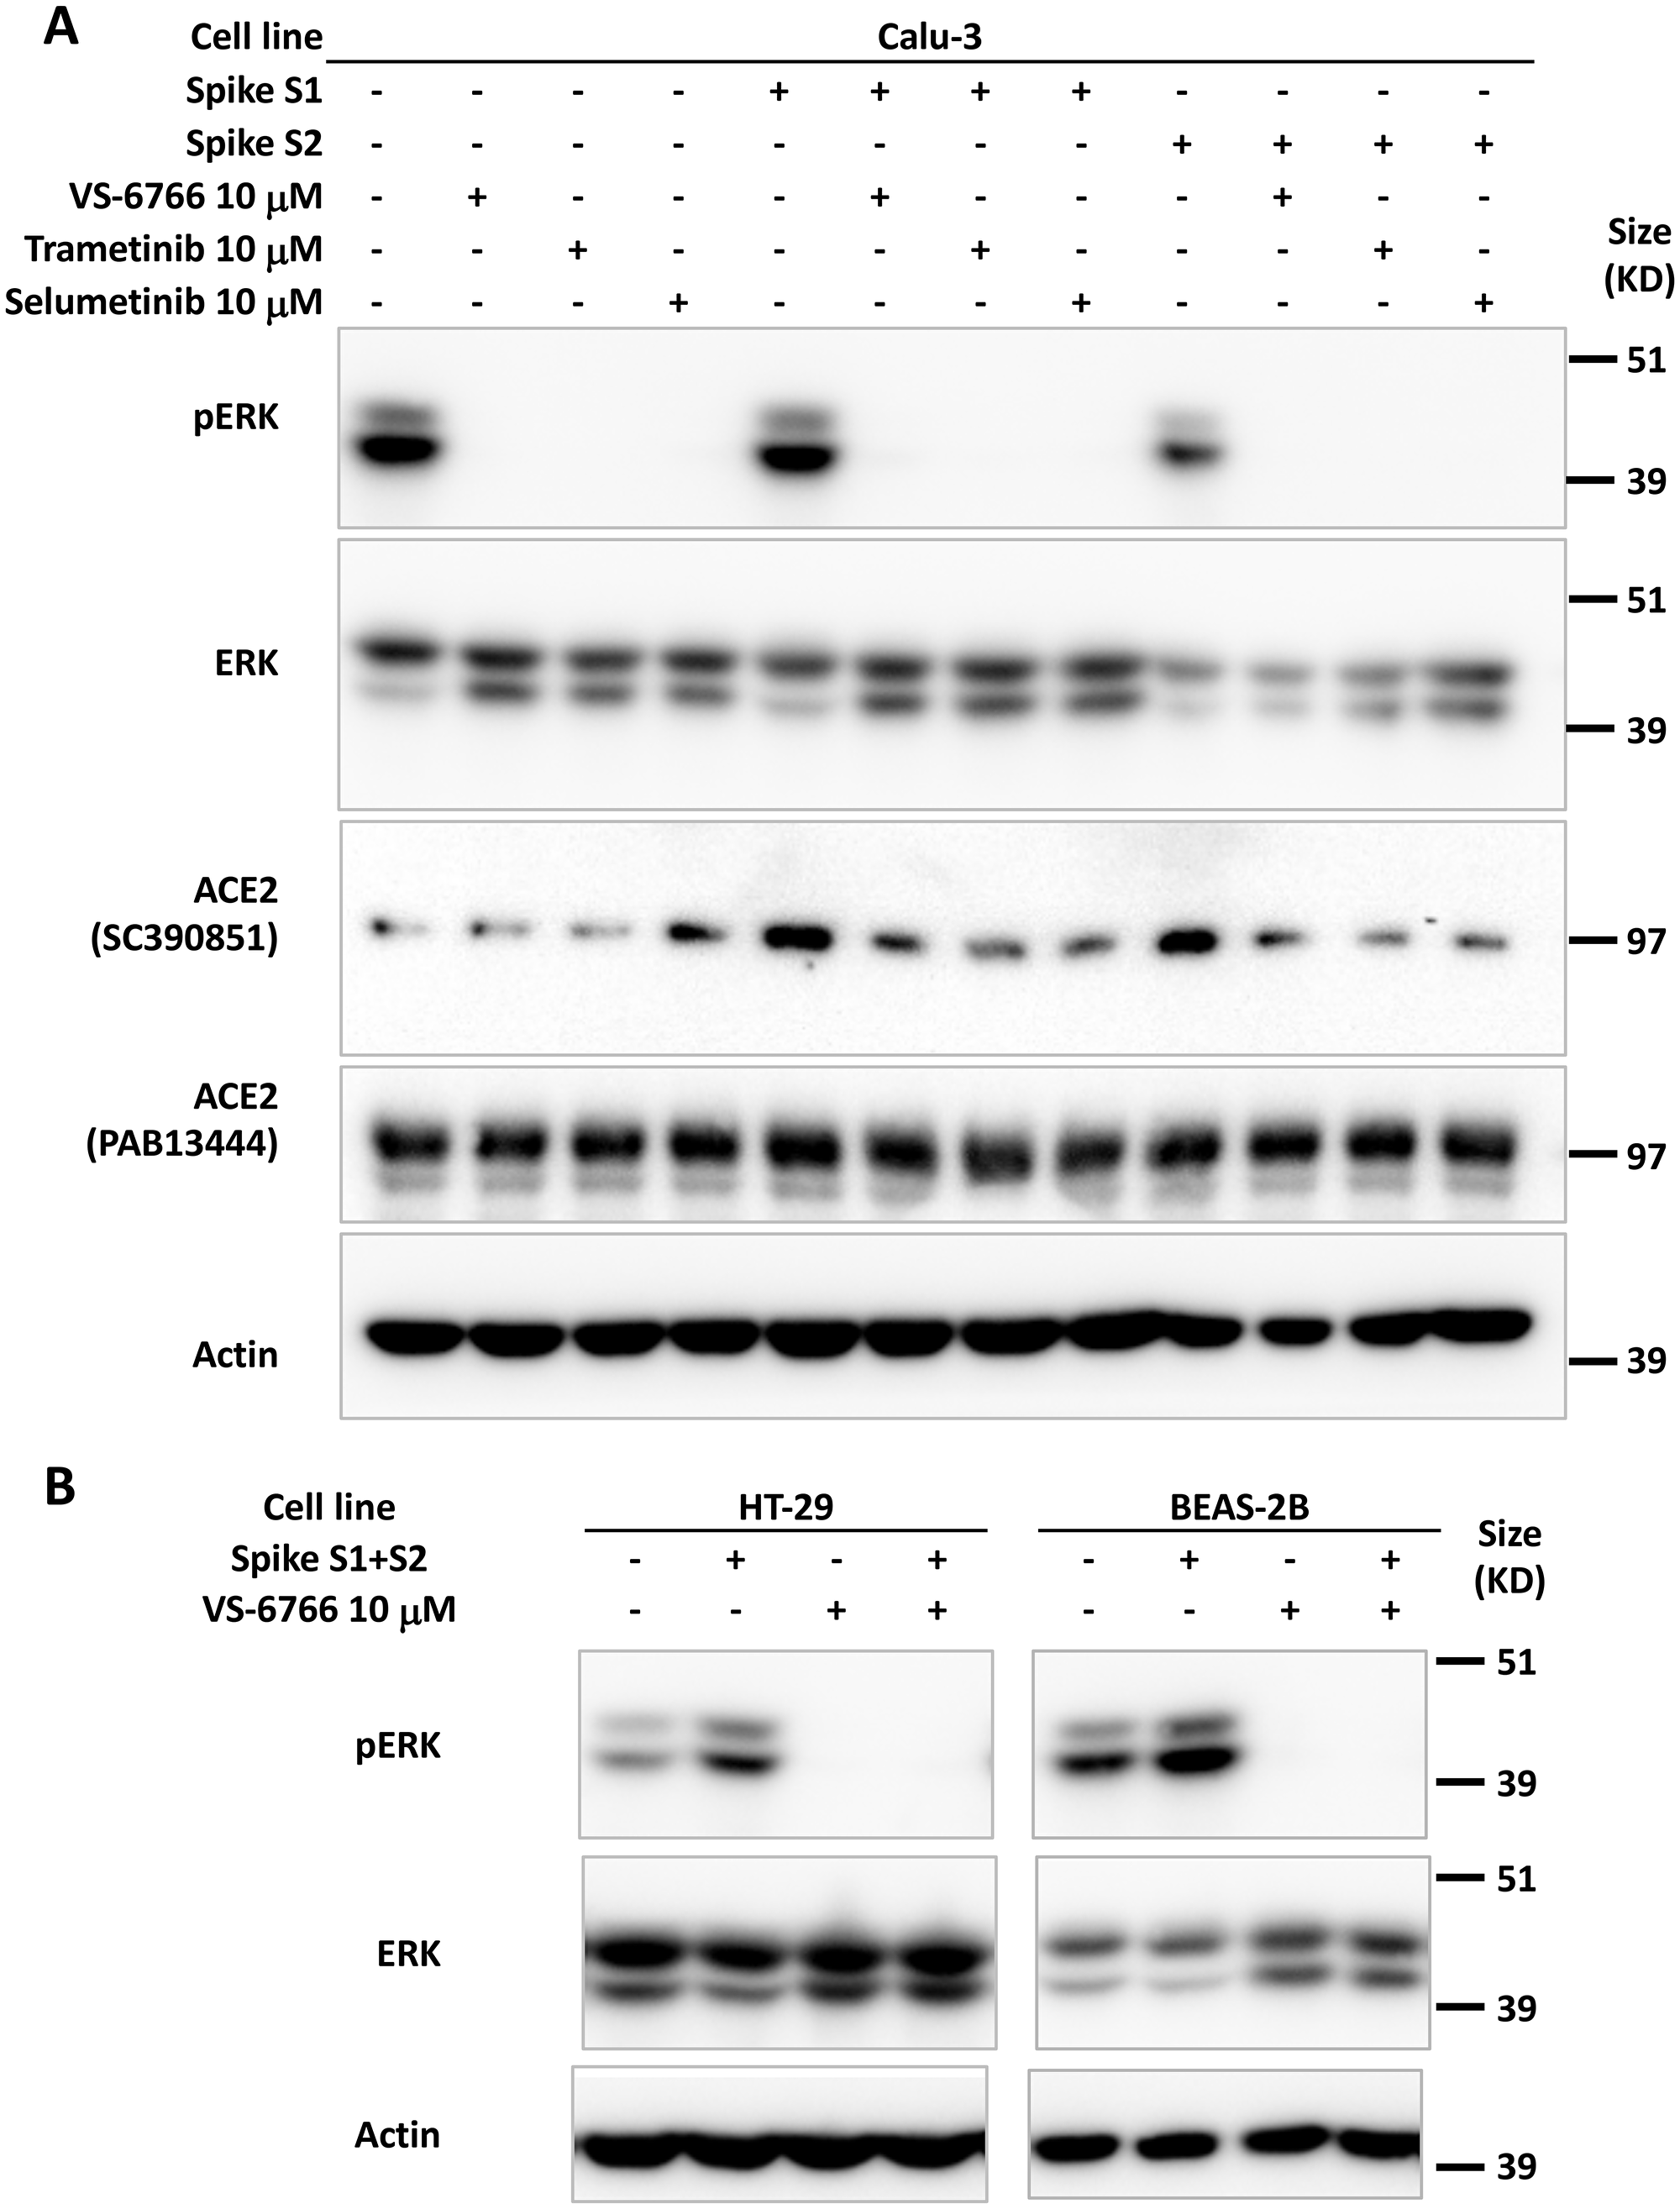 Increase in pERK by recombinant SPIKE protein is suppressed by MEK inhibition.